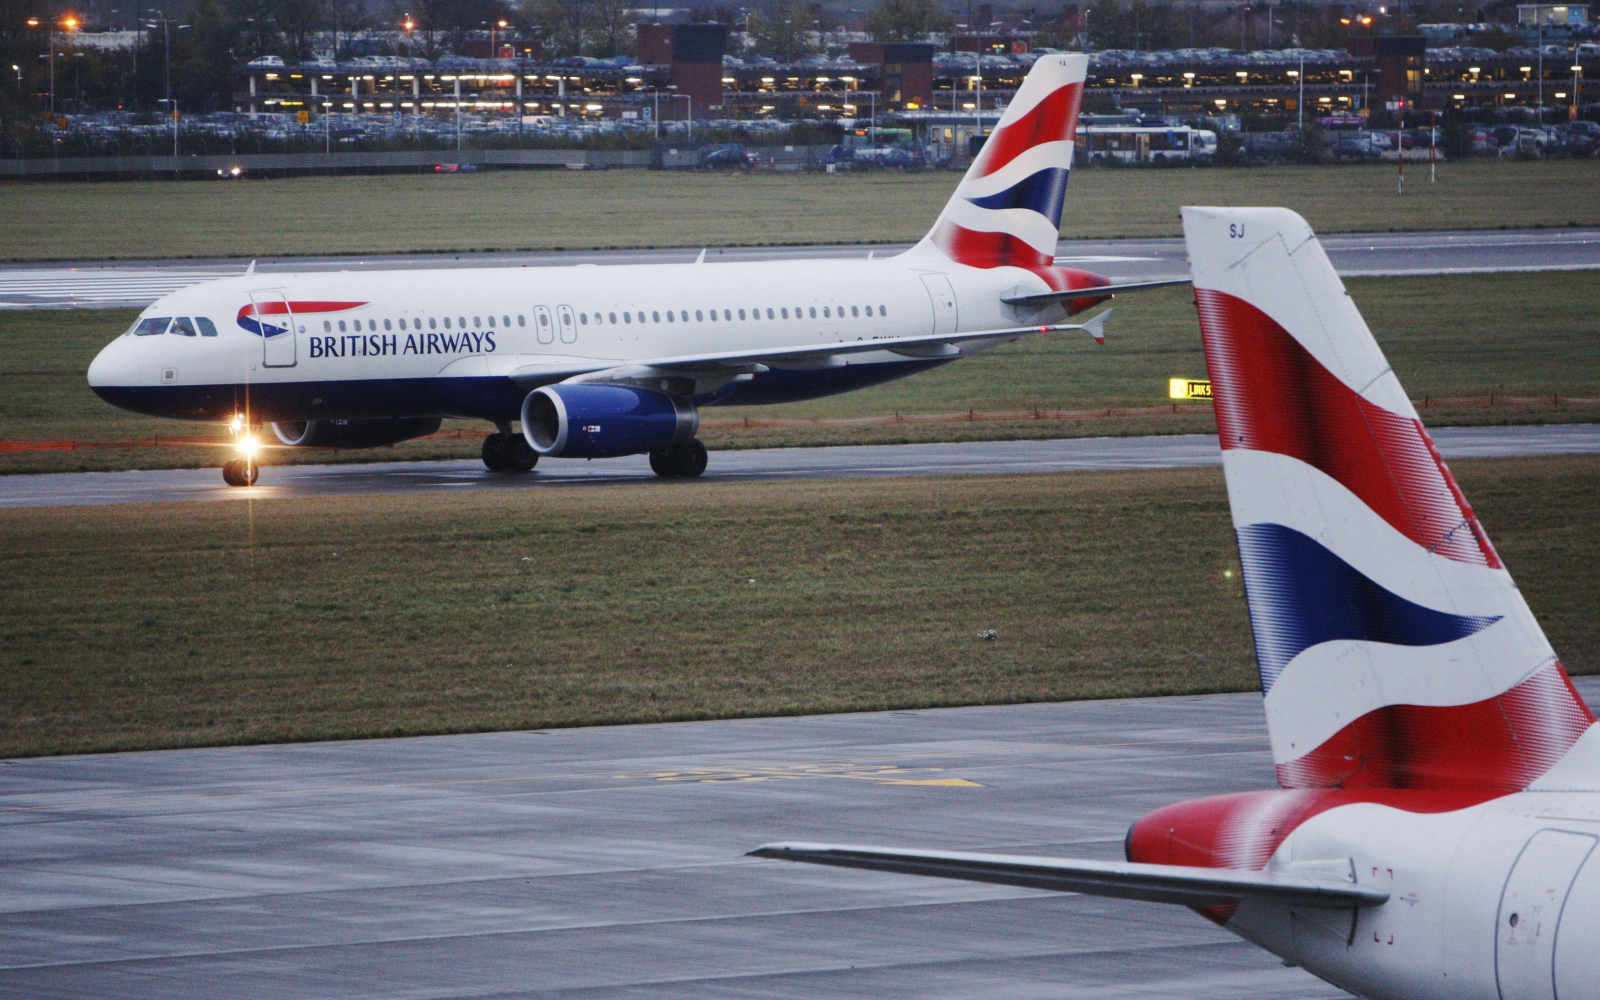 Former flight attendant sues British Airways for 'poisonous toxic fumes' ruining her health